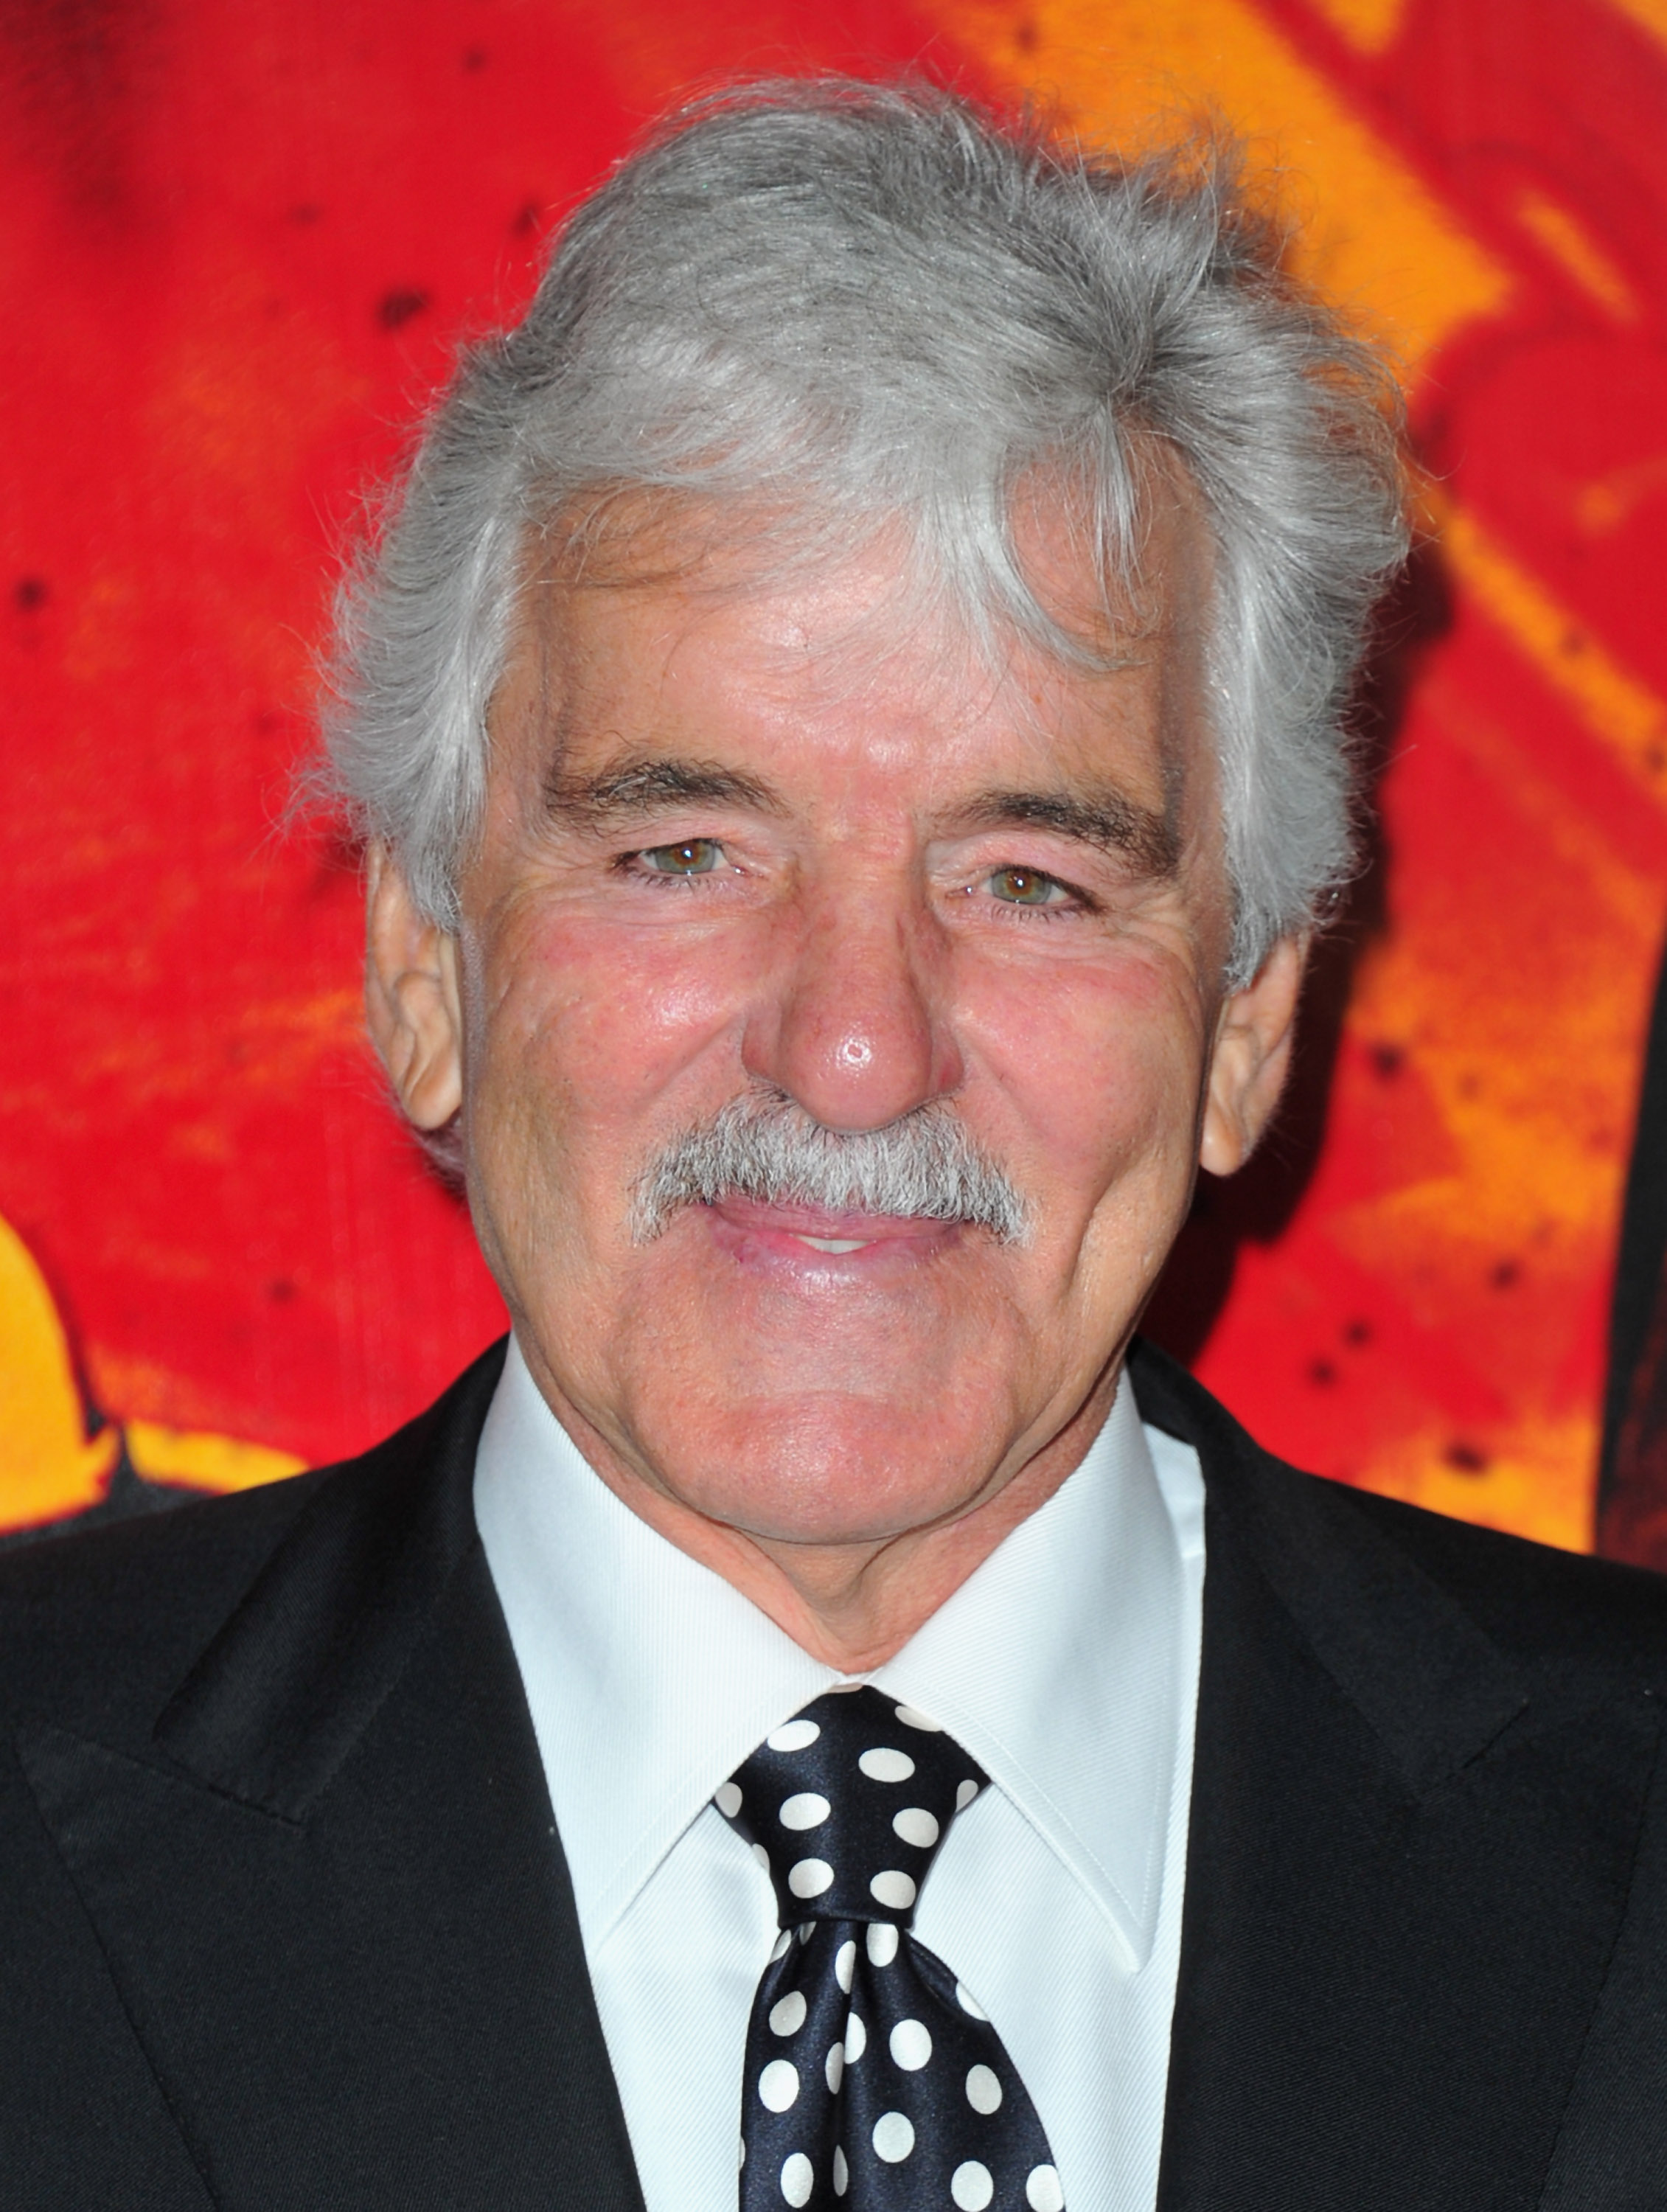 News of actor Dennis Farina's death reached Twitter on Monday. (Alberto E. Rodriguez/Getty Images)